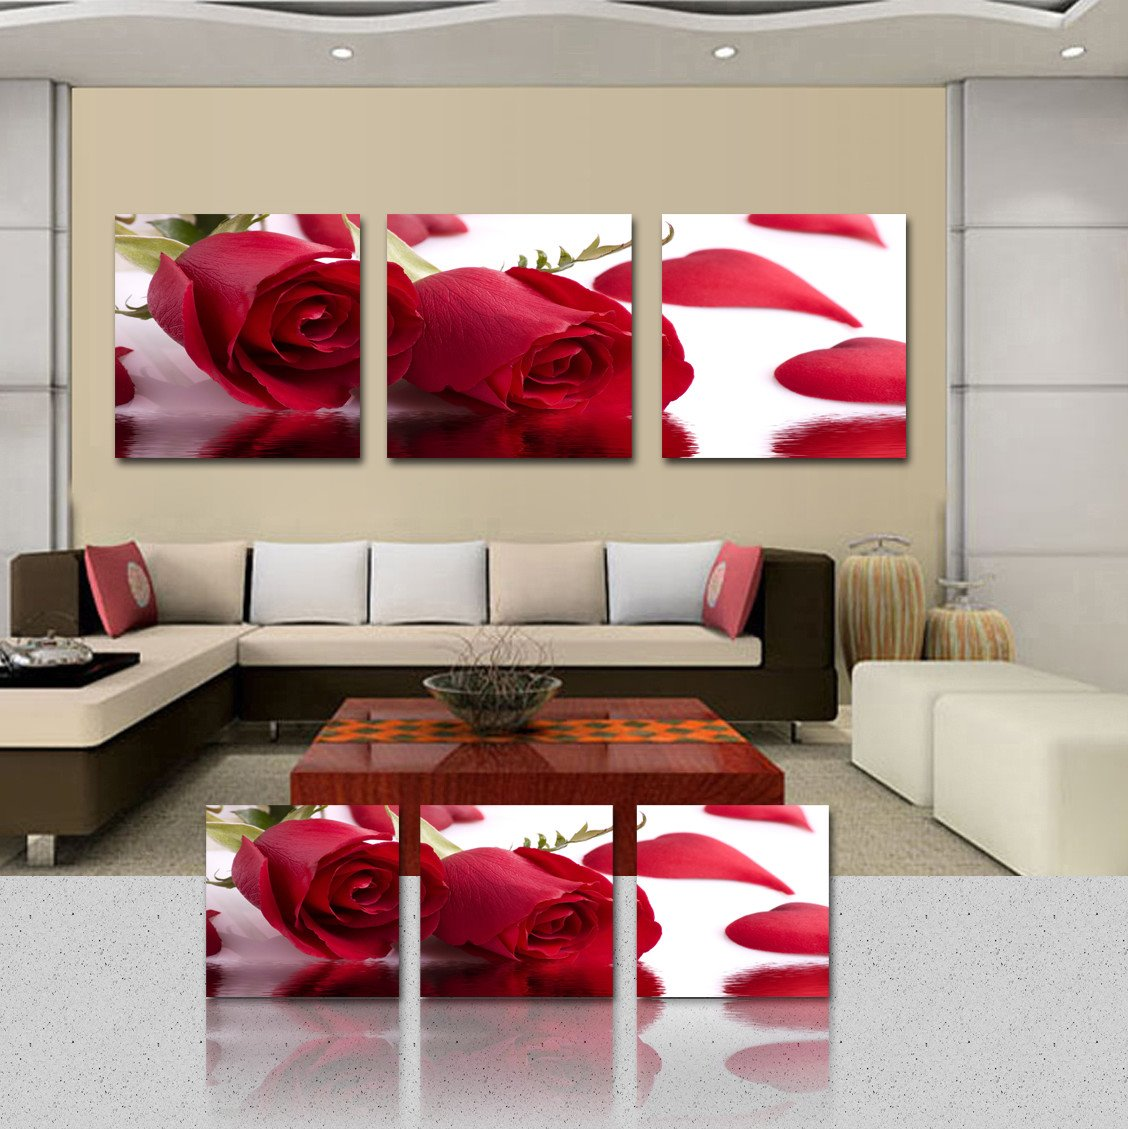 Delicate Red Roses Cross Film Art Wall Prints